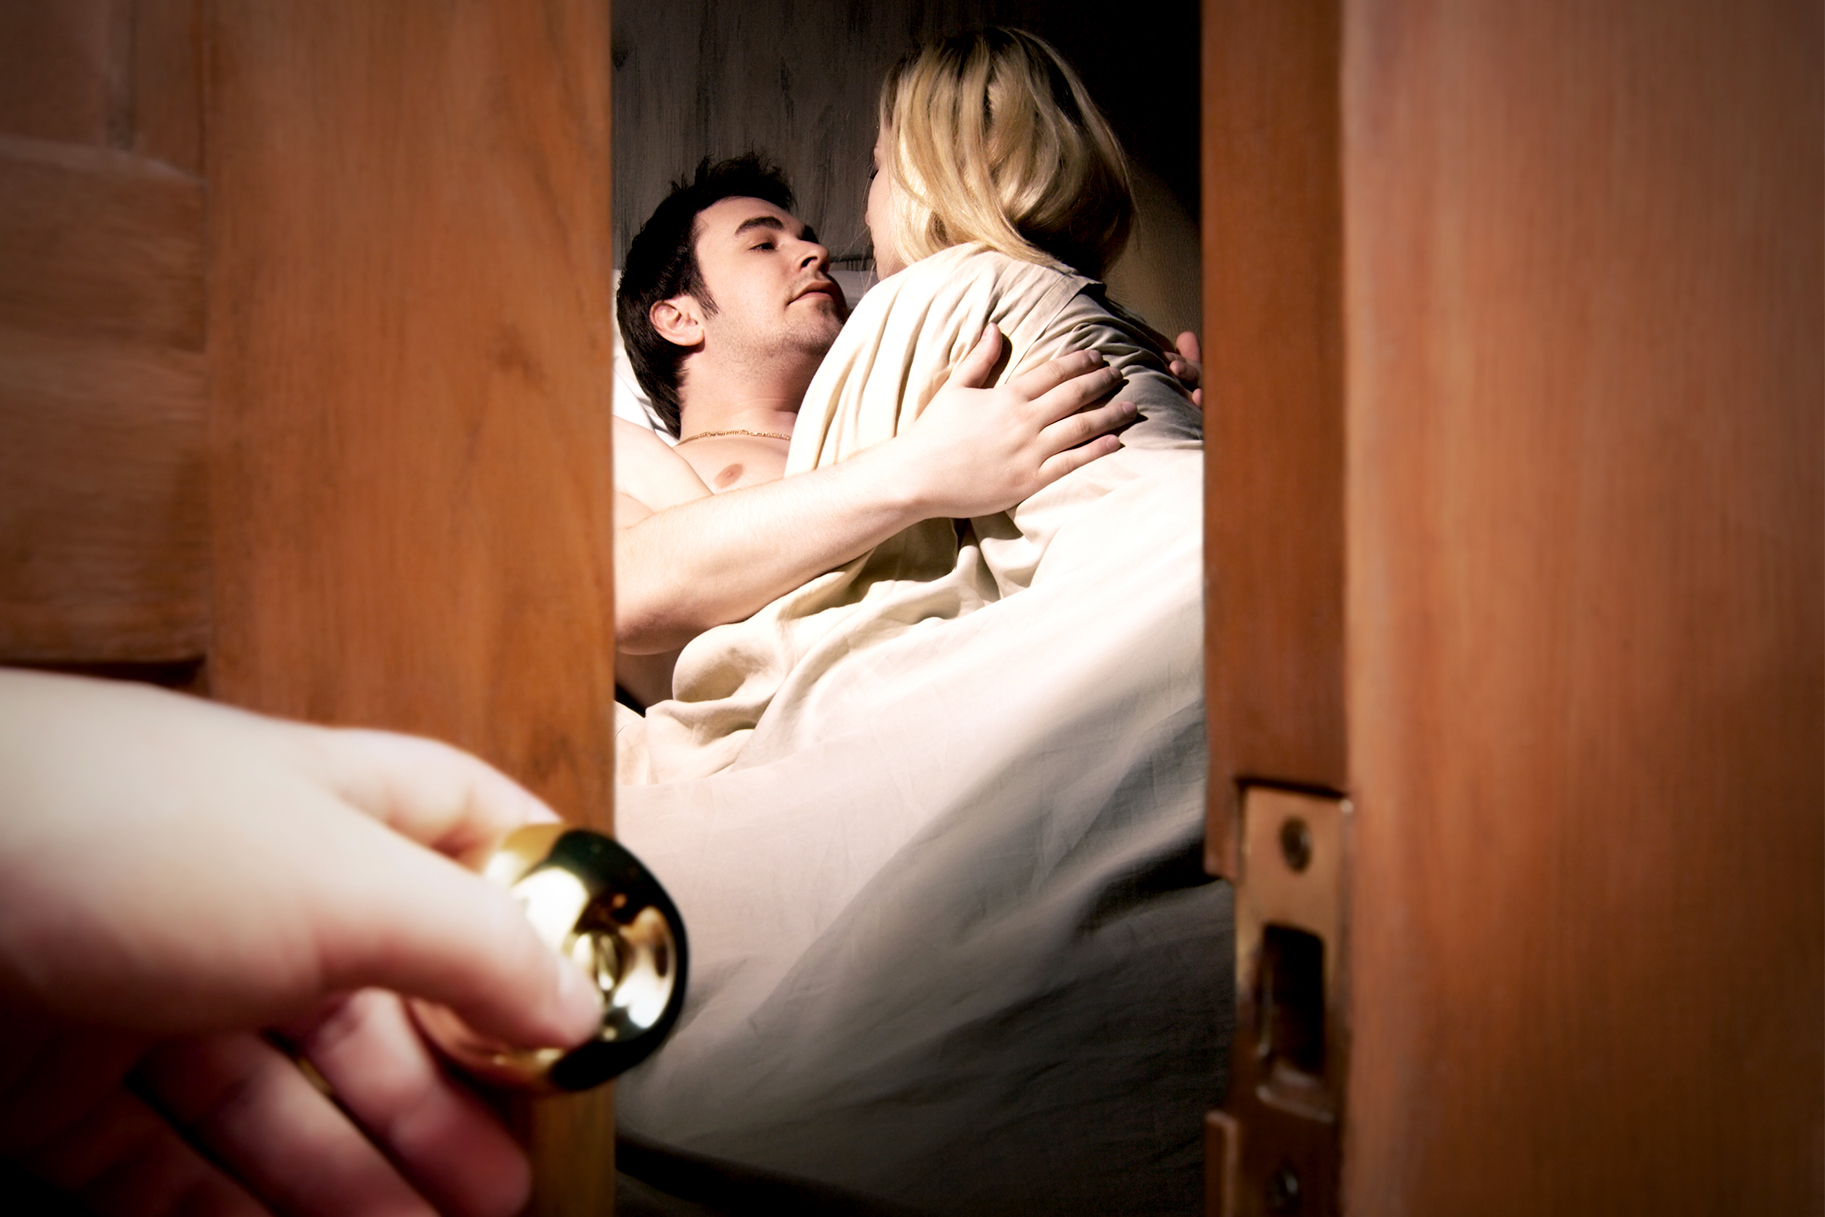 Why Having An Affair and Cheating Are Two Very Different